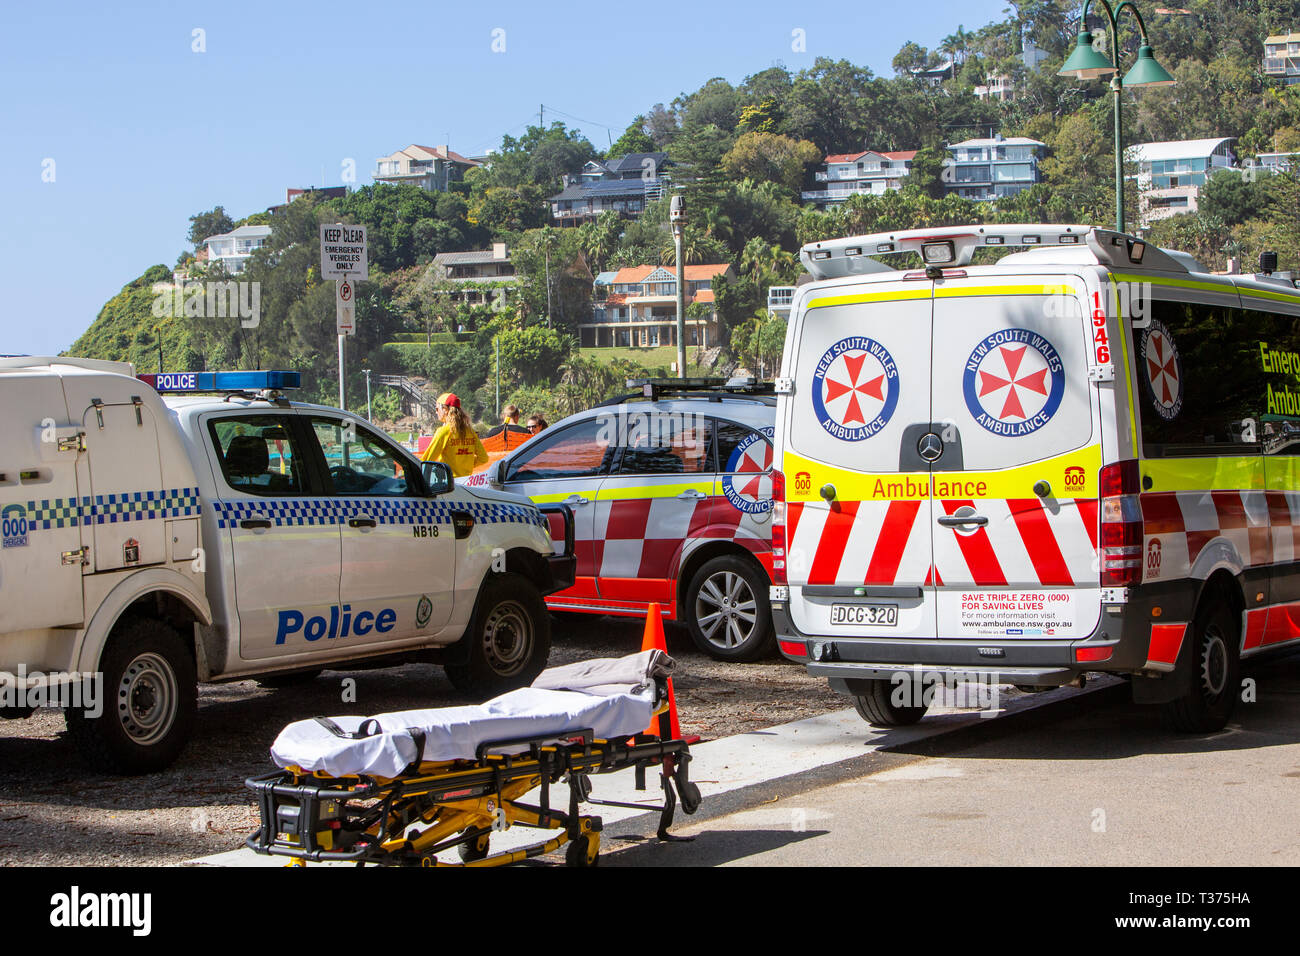 Sydney ambulance and police car at Palm beach to recover a patient who was rescued from near drowning,Australia Stock Photo